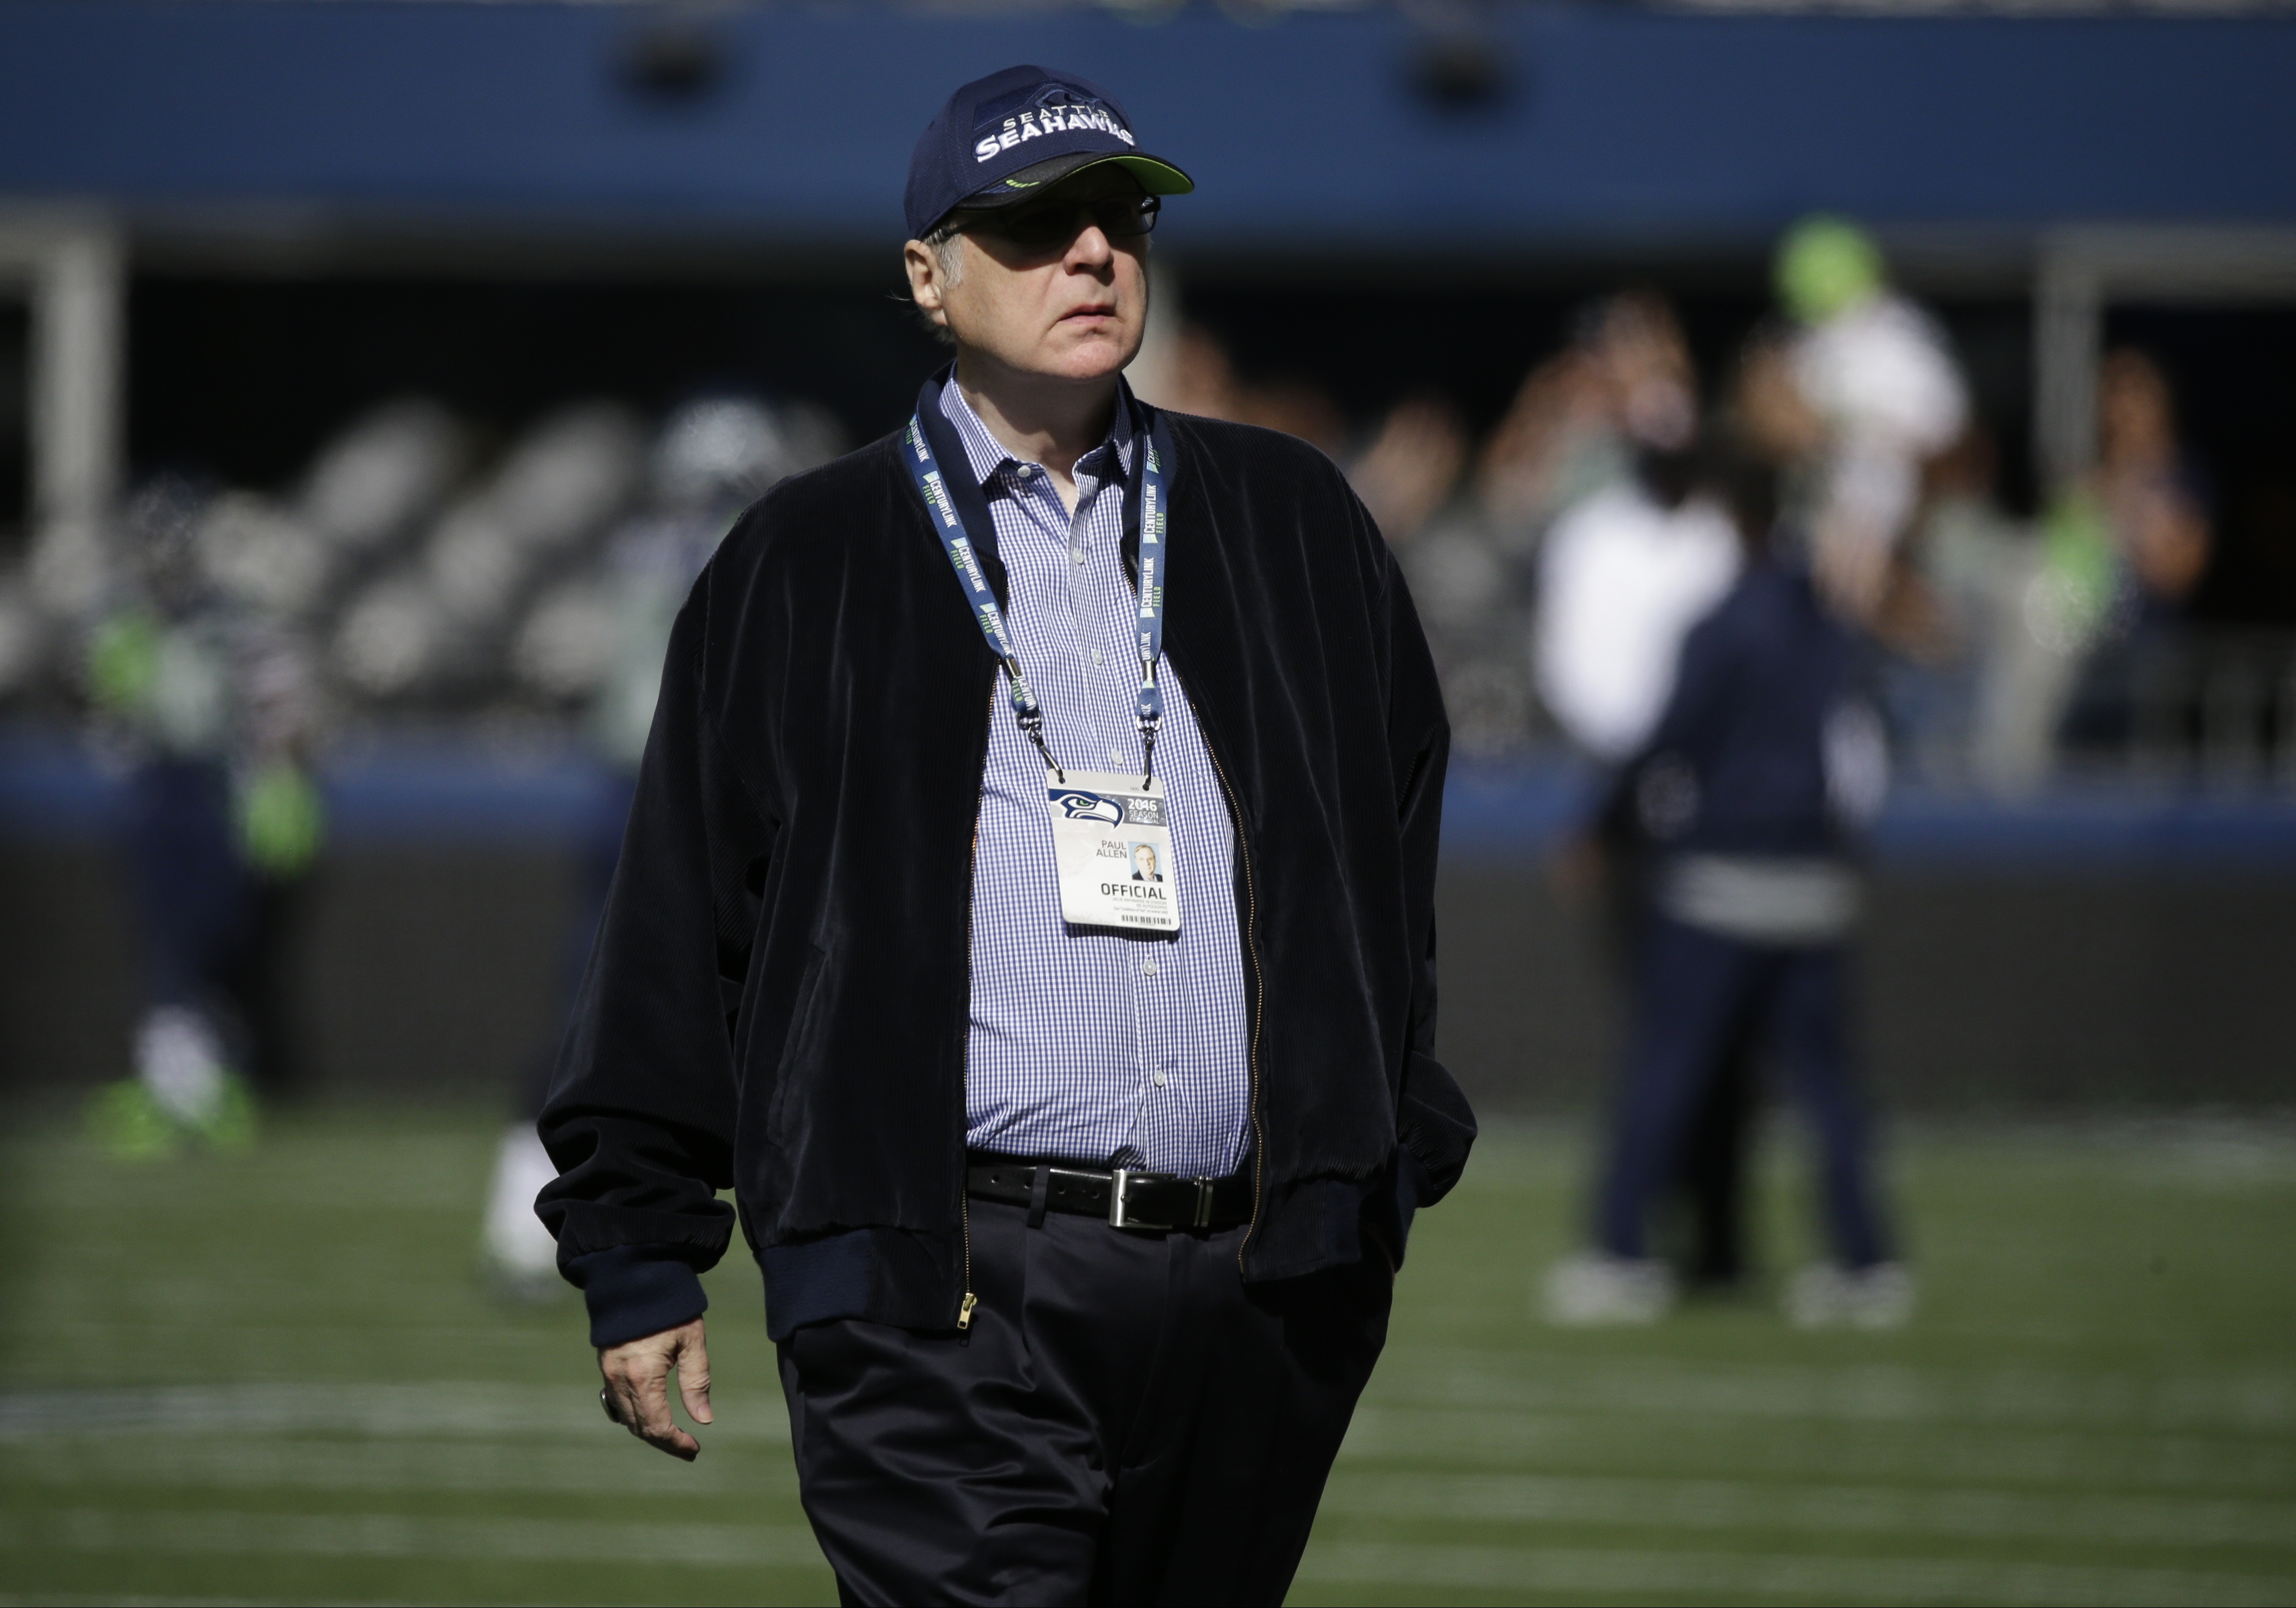 Seattle Seahawks team owner Paul Allen walks on the field before an NFL football game against the San Francisco 49ers, Sept. 25, 2016, in Seattle.